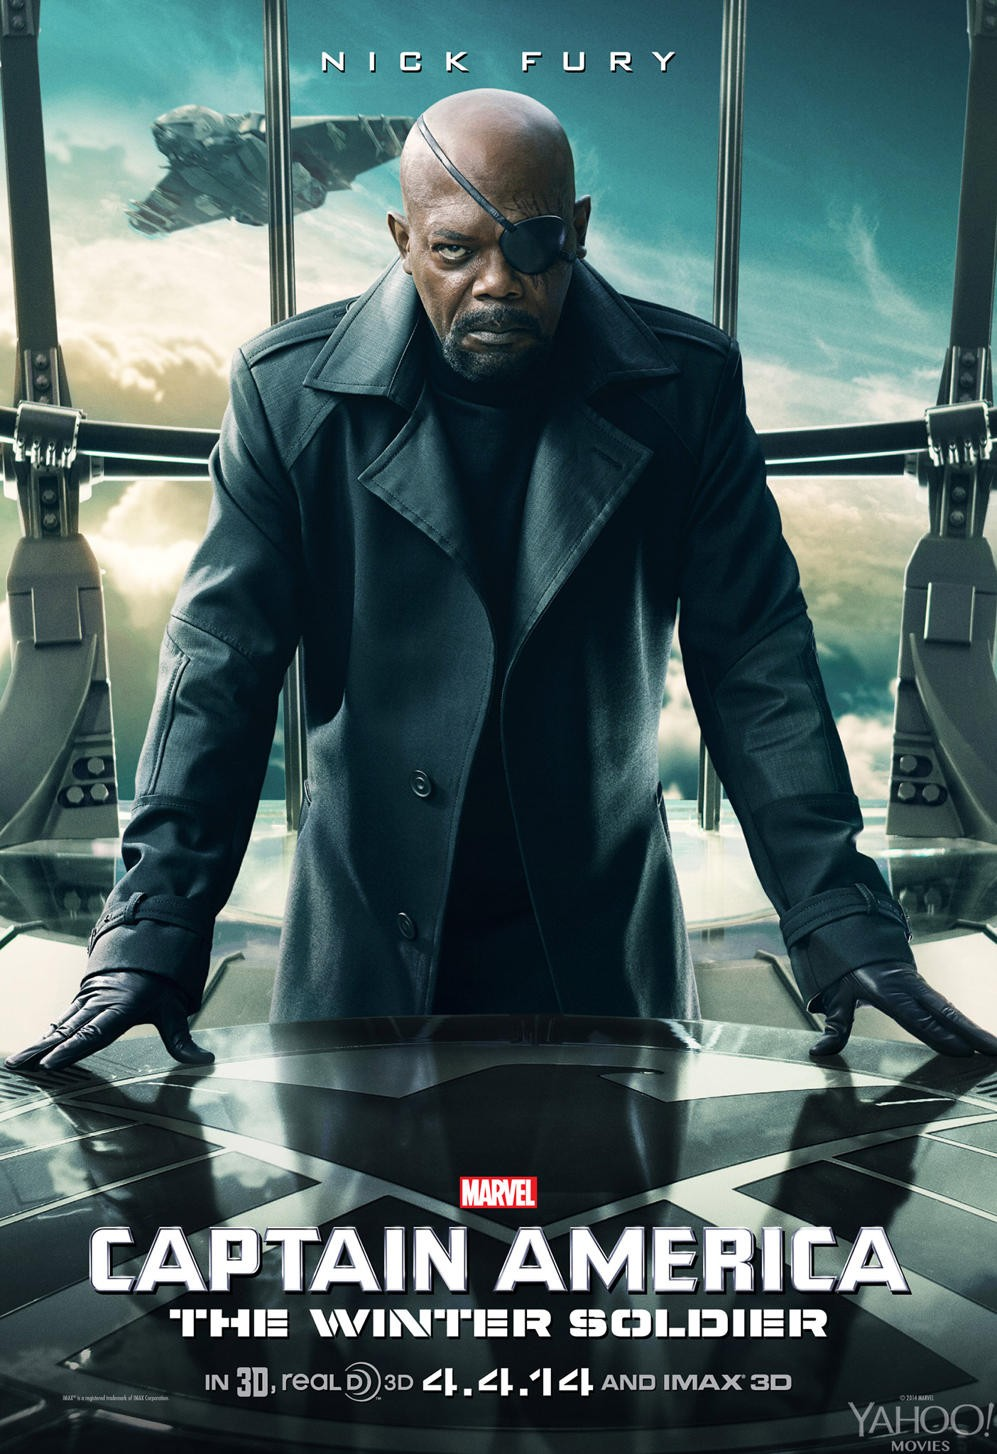 Captain America The Winter Soldier-Official Poster Banner PROMO XLRG-31JANEIRO2014-02